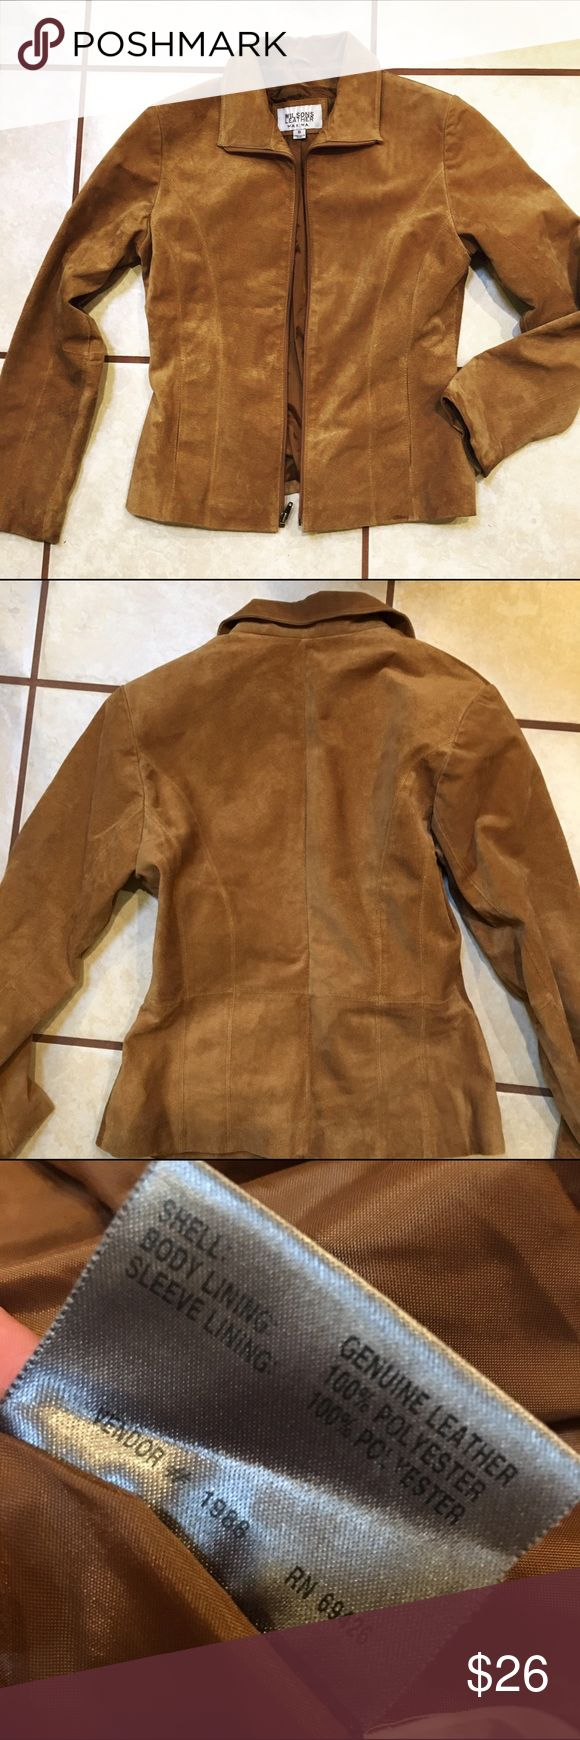 1 HOUR SALE Wilson Leather Maxima Jacket Small Wilsons